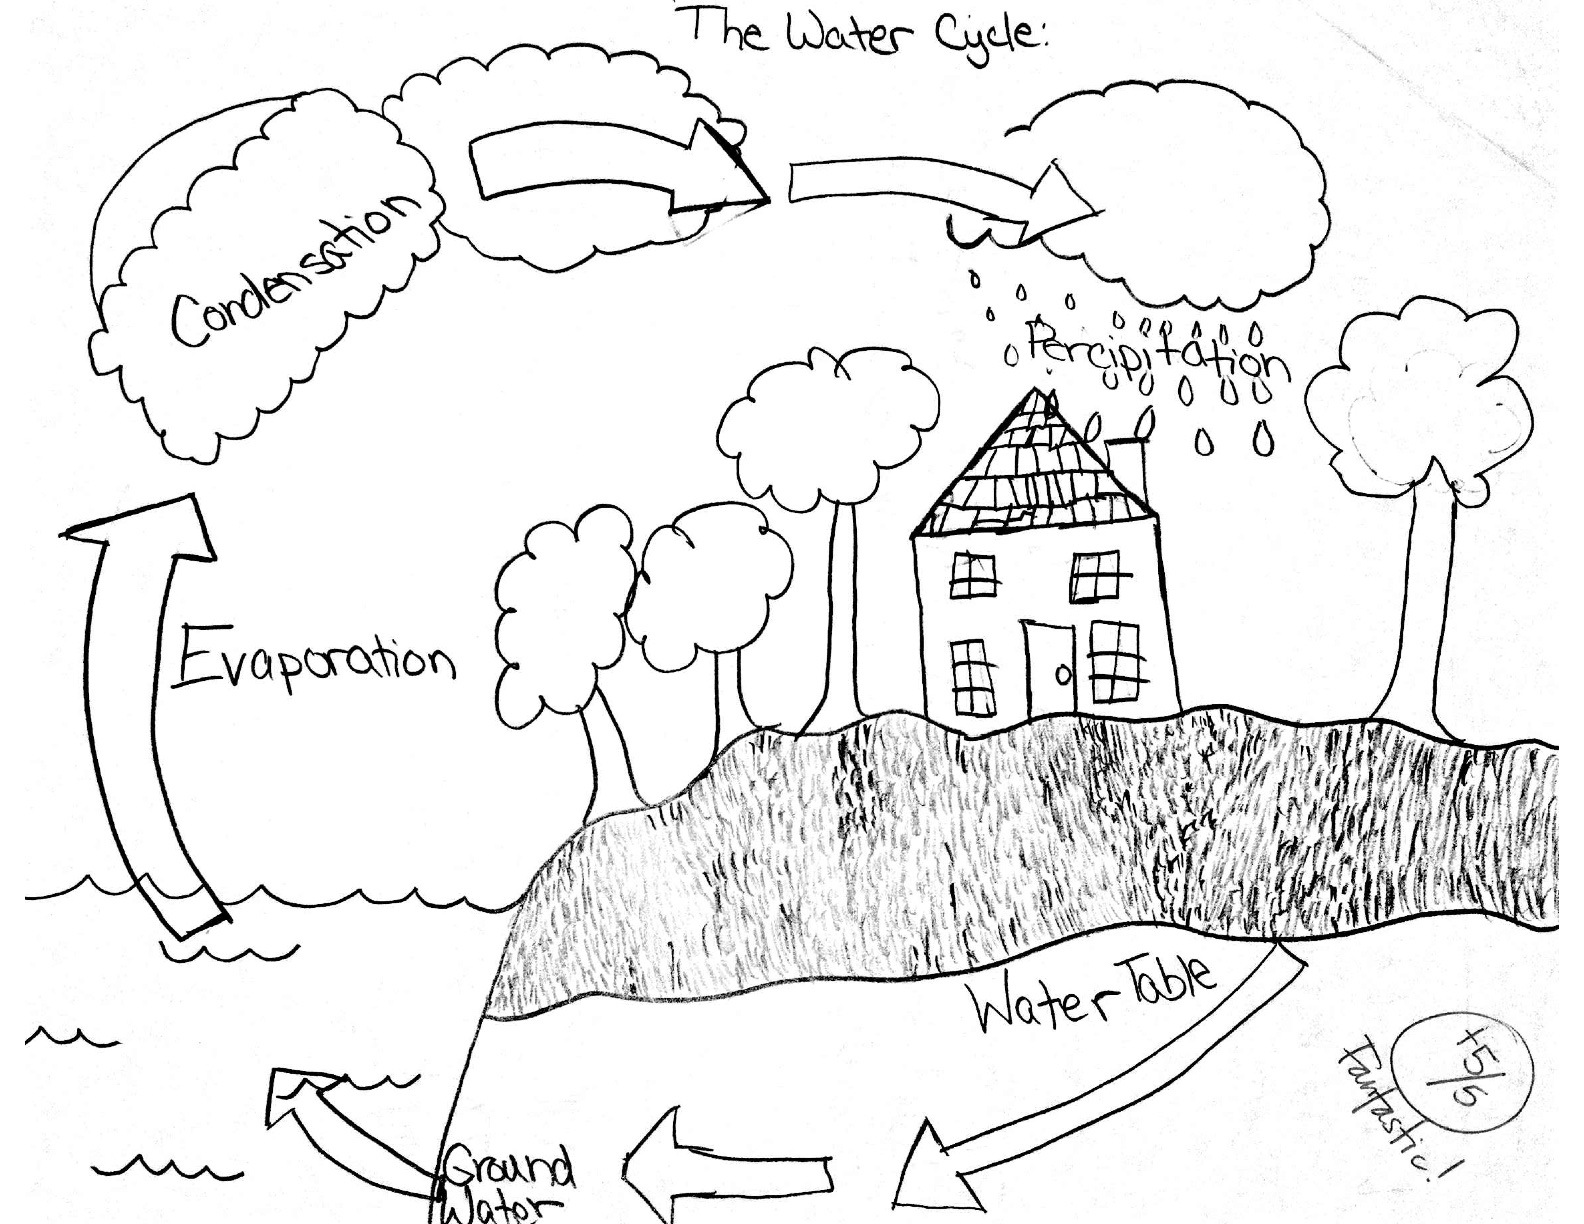 rock cycle diagram handout  rock  free engine image for